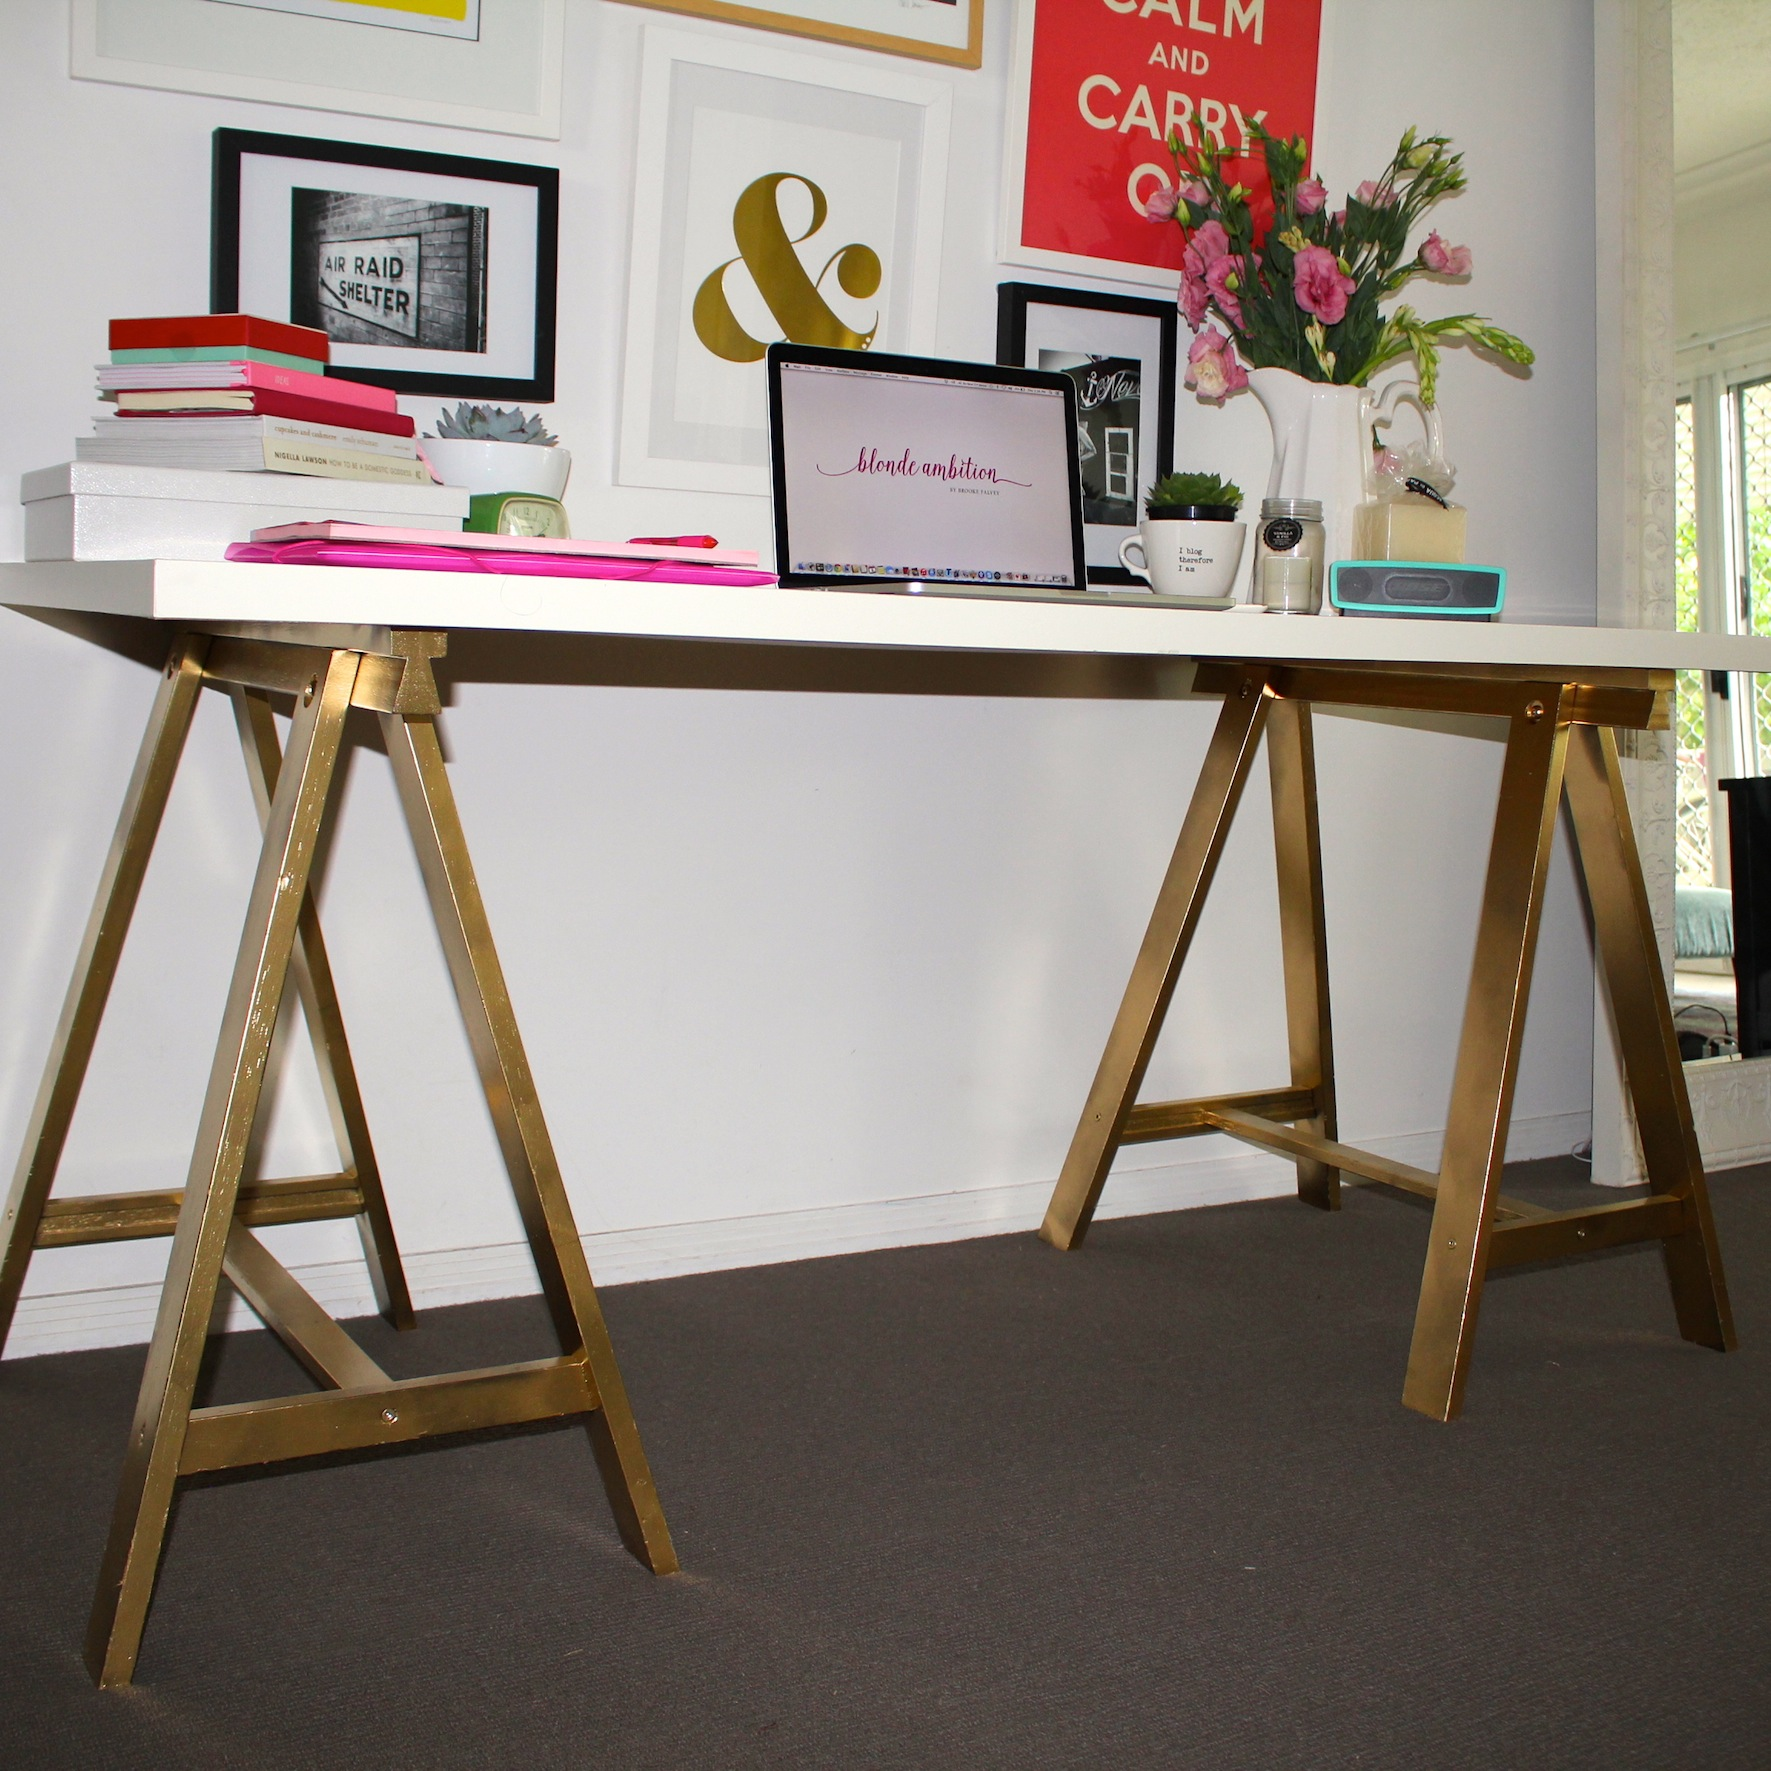 My 10 Minute Ikea Desk Makeover Blonde Ambition